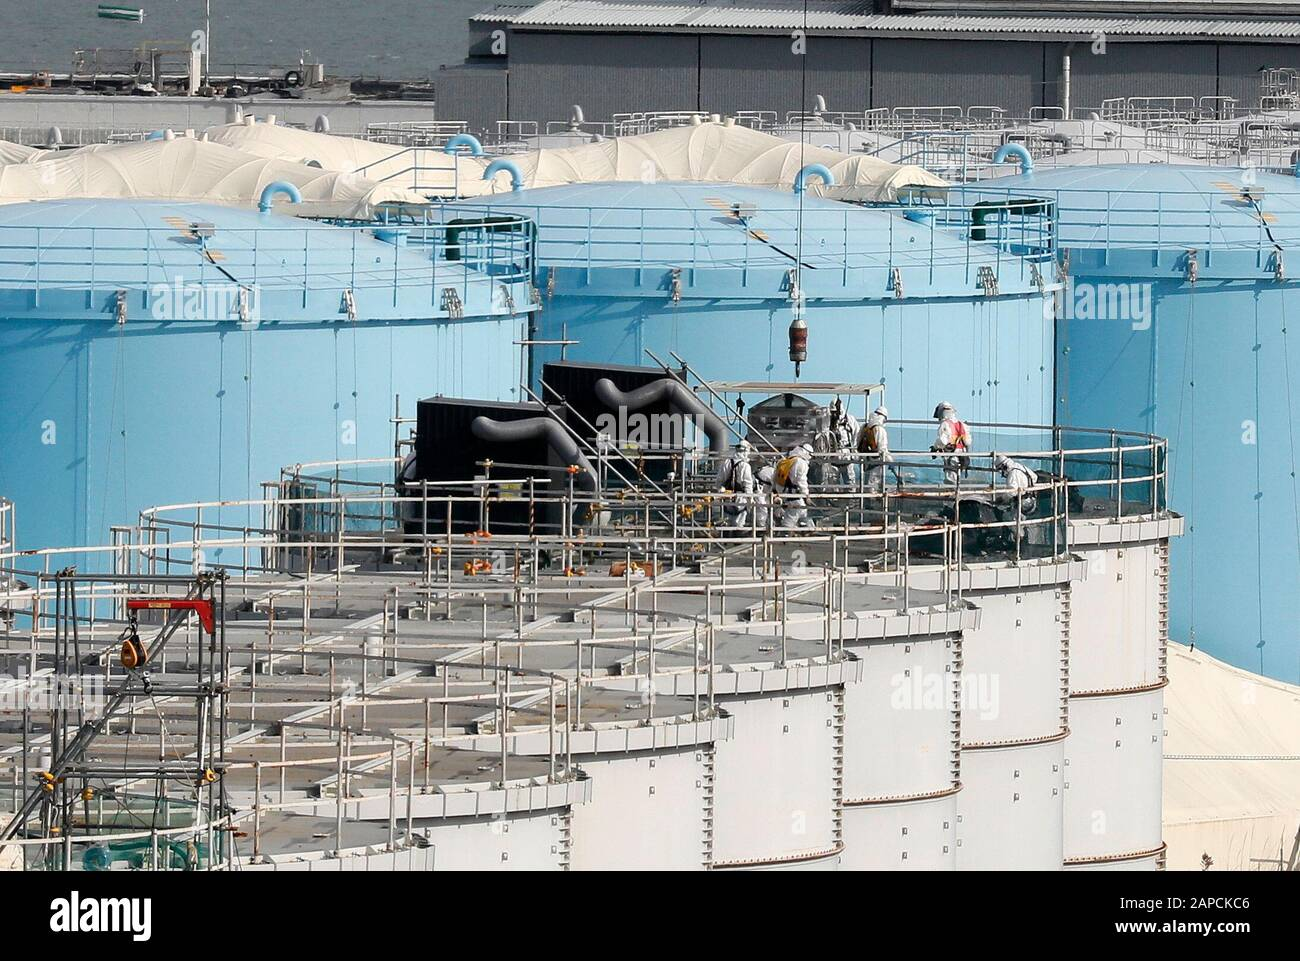 January 22, 2020, Okuma, Fukushima, Japan: Workers demolish old storage tanks included water processed in ALPS(Multi-nuclide retrieval equipment) at  tsunami-devastated Tokyo Electric Power Company (TEPCO) Fukushima Daiichi Nuclear Power Plant in Okuma town, Fukushima Prefecture, 22 January 2020 after transferring to new tanks. The storage tanks including water processed in the ALPS will be full around summer of 2022, TEPCO has told. Japanese government will need to decide soon how manage the processed water still including tritium.  (Credit Image: © Kimimasa Mayama/POOL via ZUMA Wire) Stock Photo